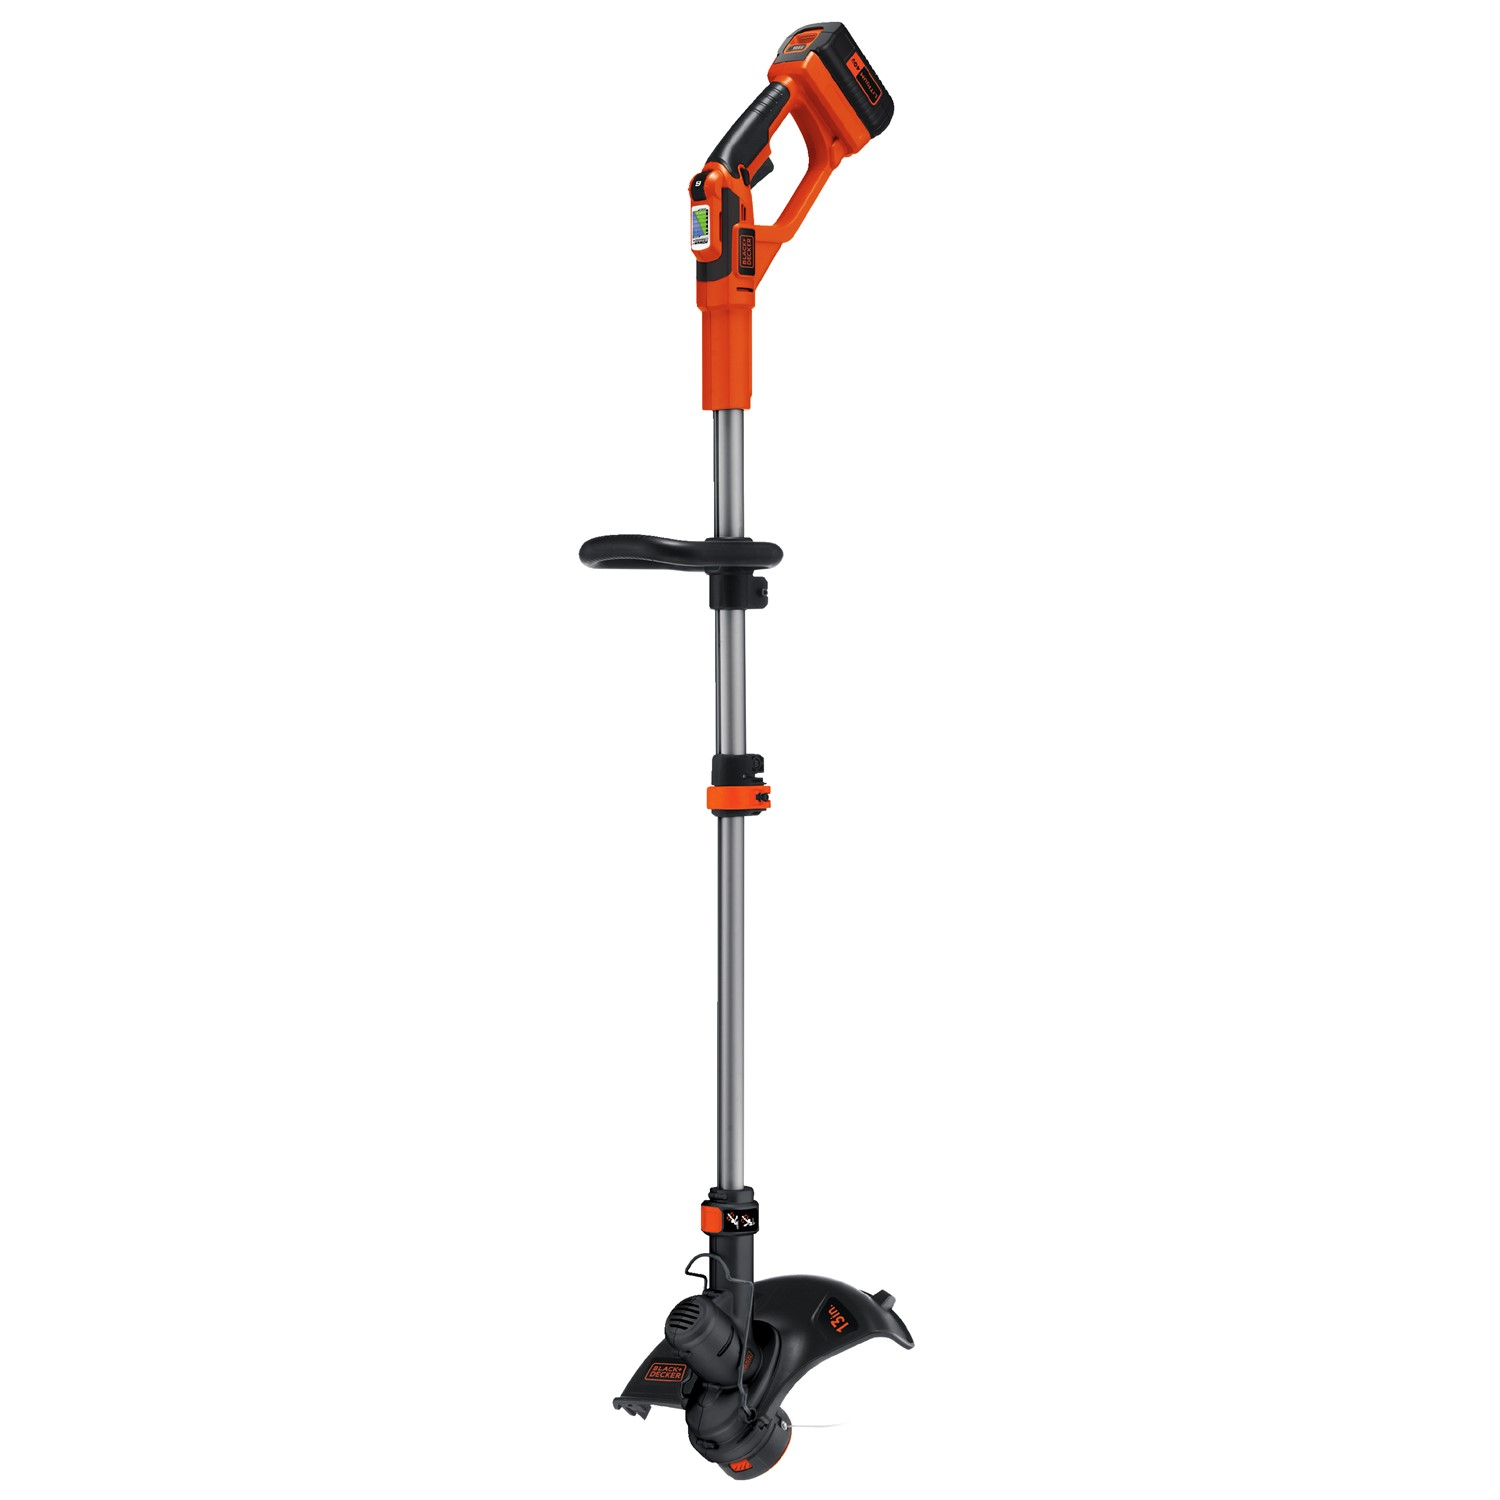 BLACK+DECKER LST136 40V MAX* Lithium High Performance String Trimmer with Power Command